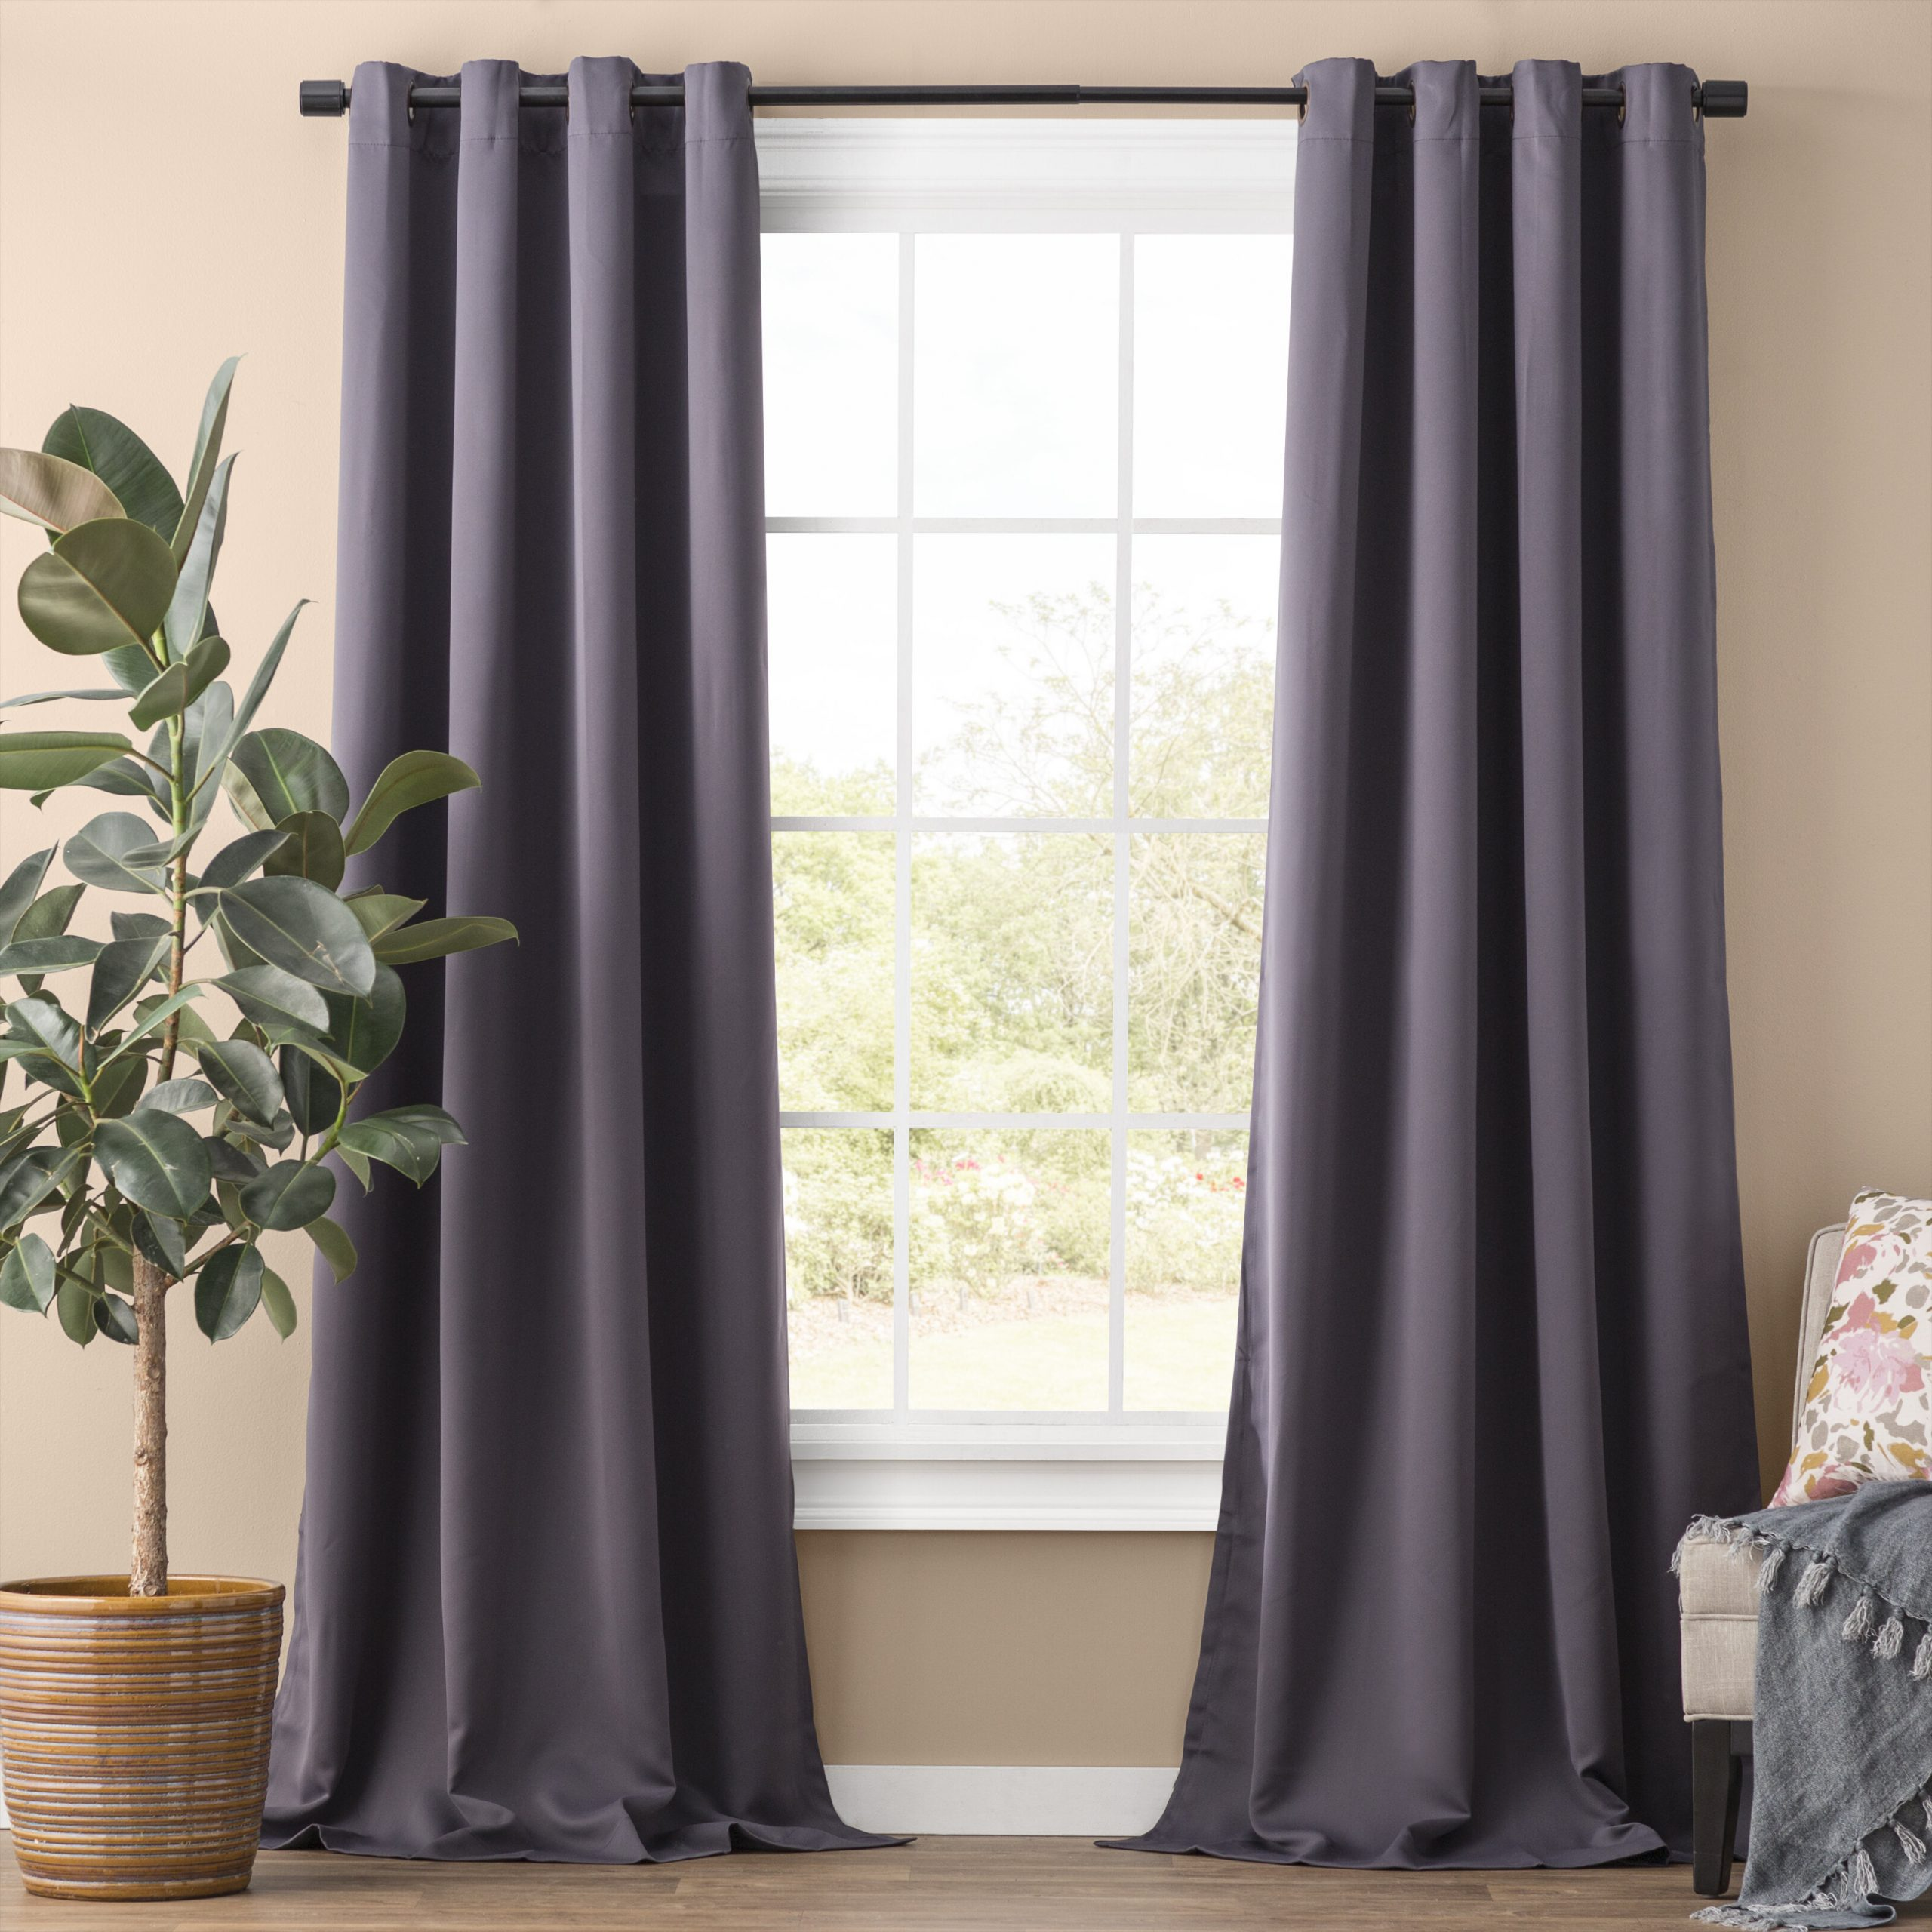 Solid Blackout Thermal Grommet Curtain Panels Regarding Most Popular Solid Thermal Insulated Blackout Curtain Panel Pairs (View 18 of 20)